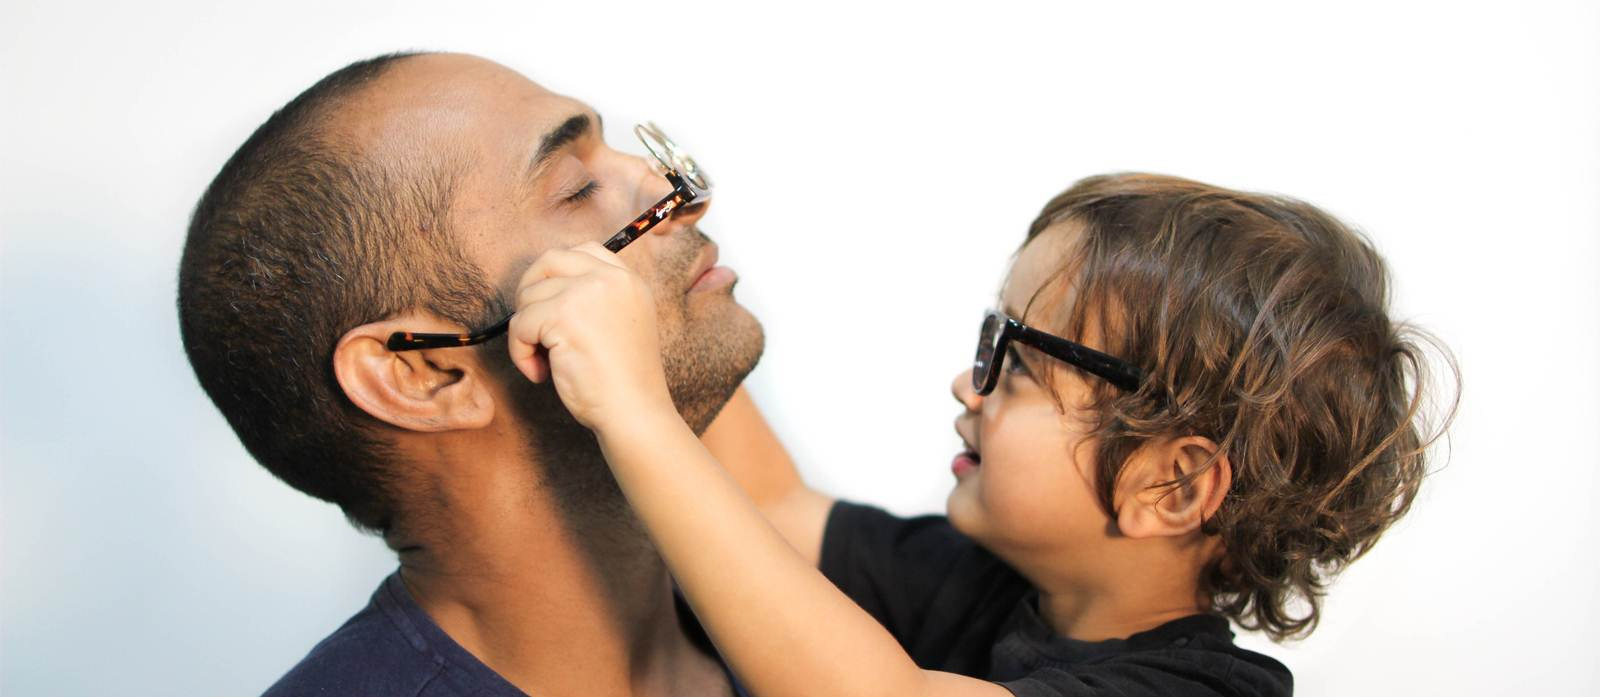 Signs Your Child May Need Glasses | Trends